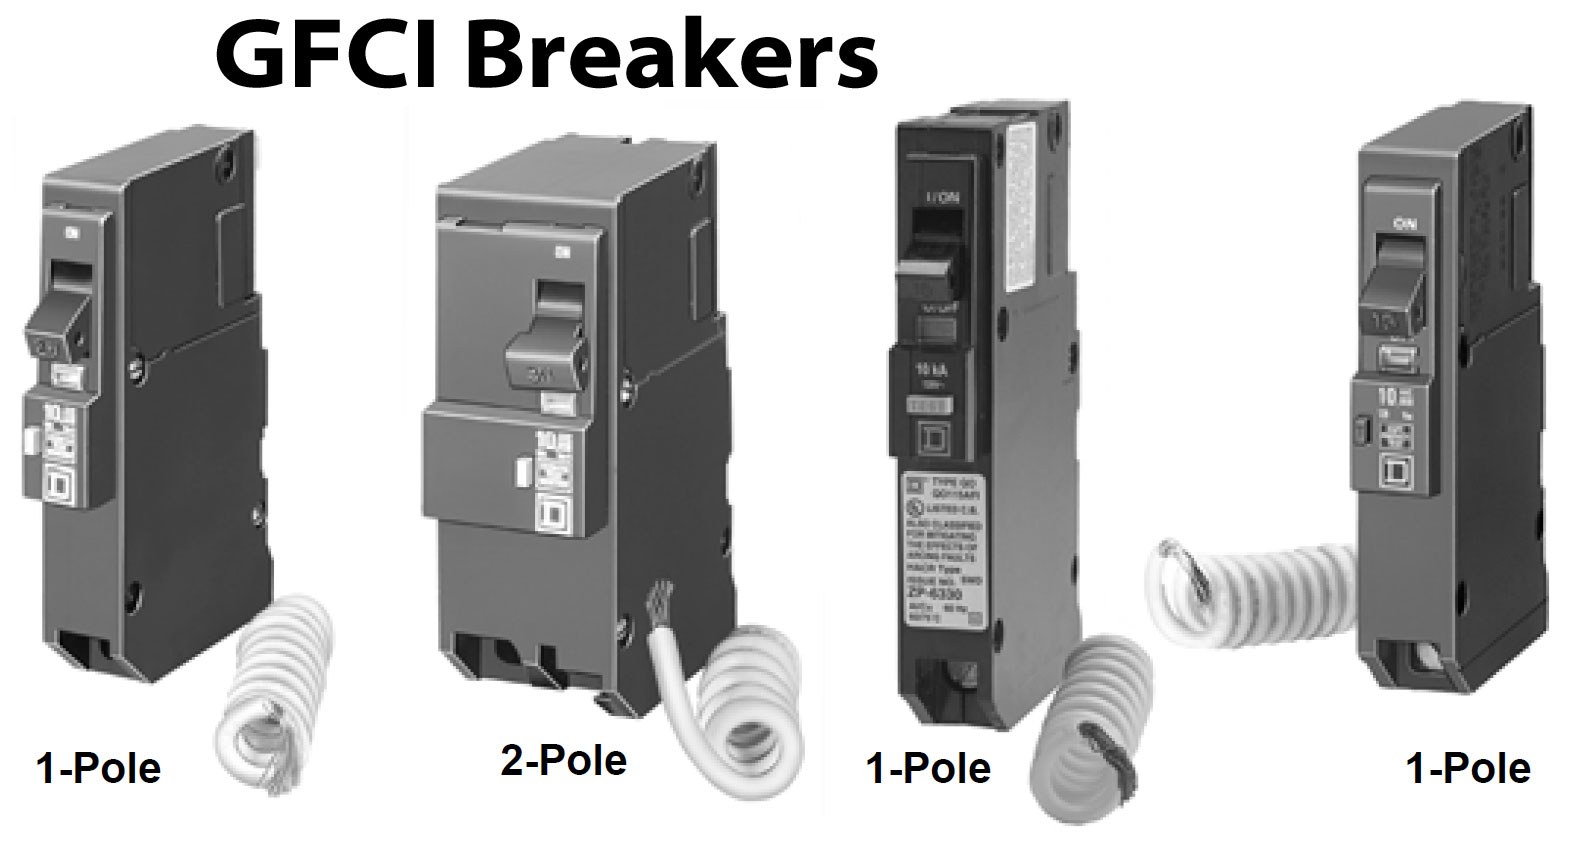 GFCI breakers 1000 how to install and troubleshoot gfci eaton gfci breaker wiring diagram at honlapkeszites.co